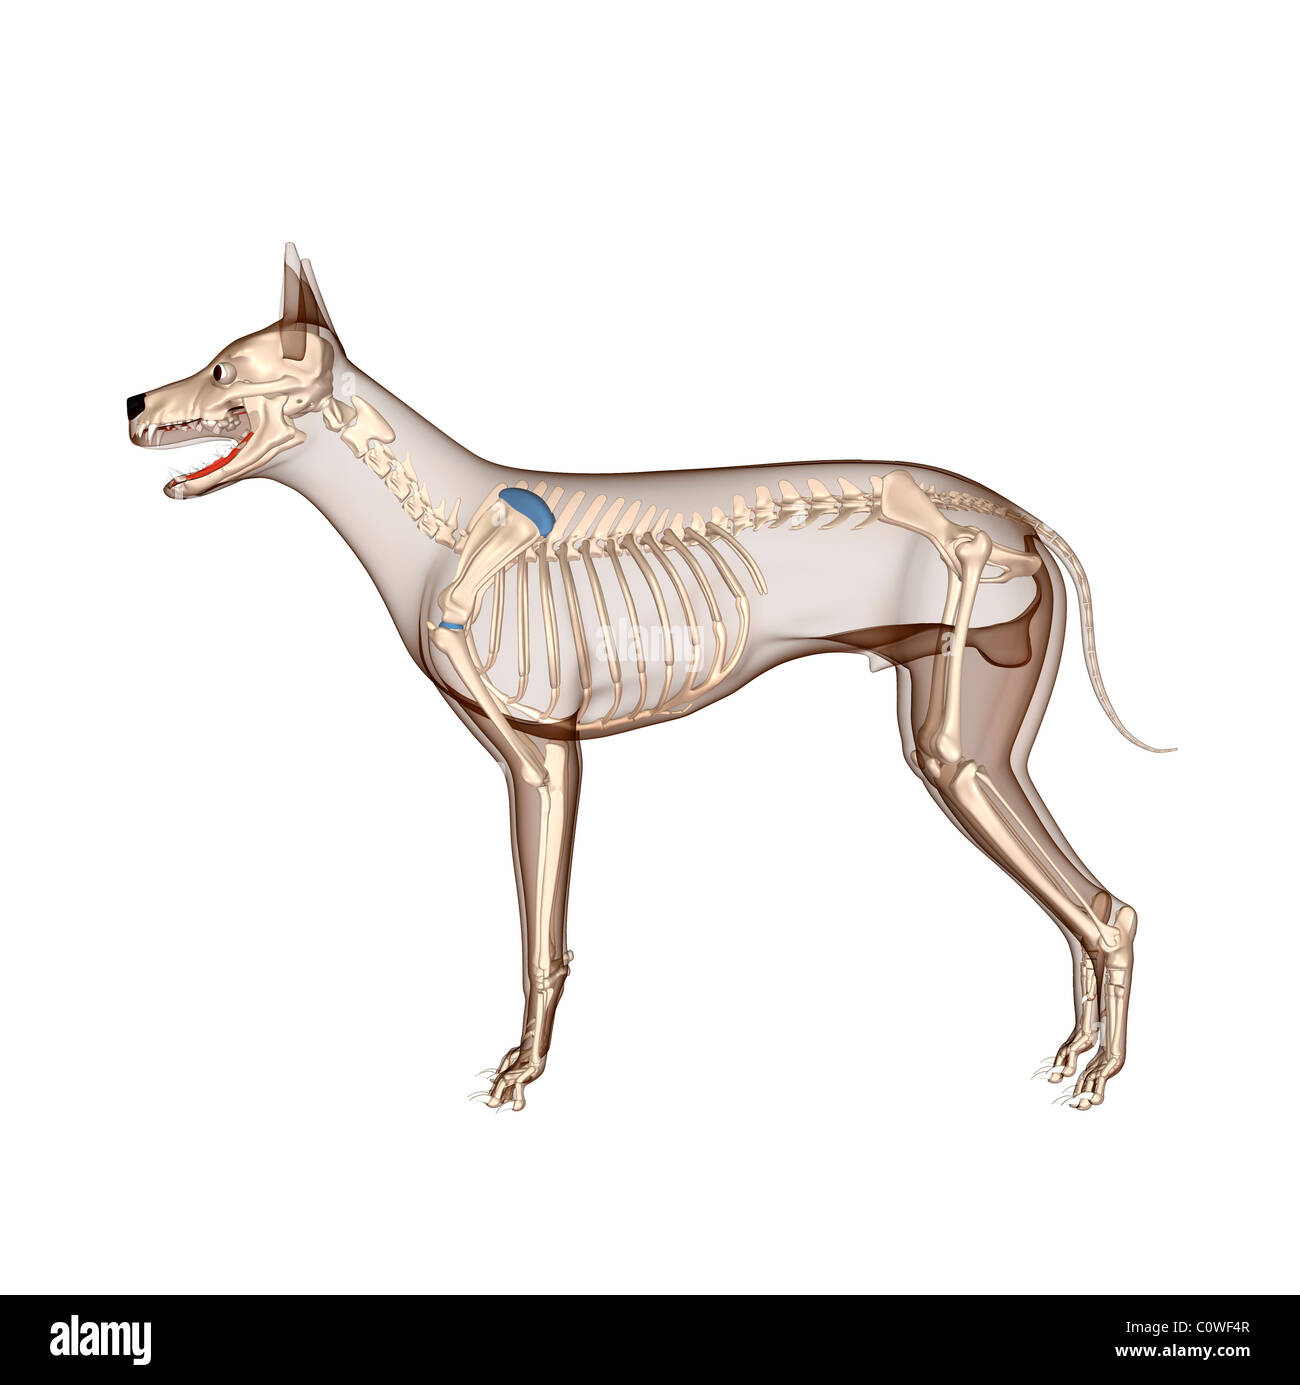 Anatomie chien squelette avec corps transparent Photo Stock